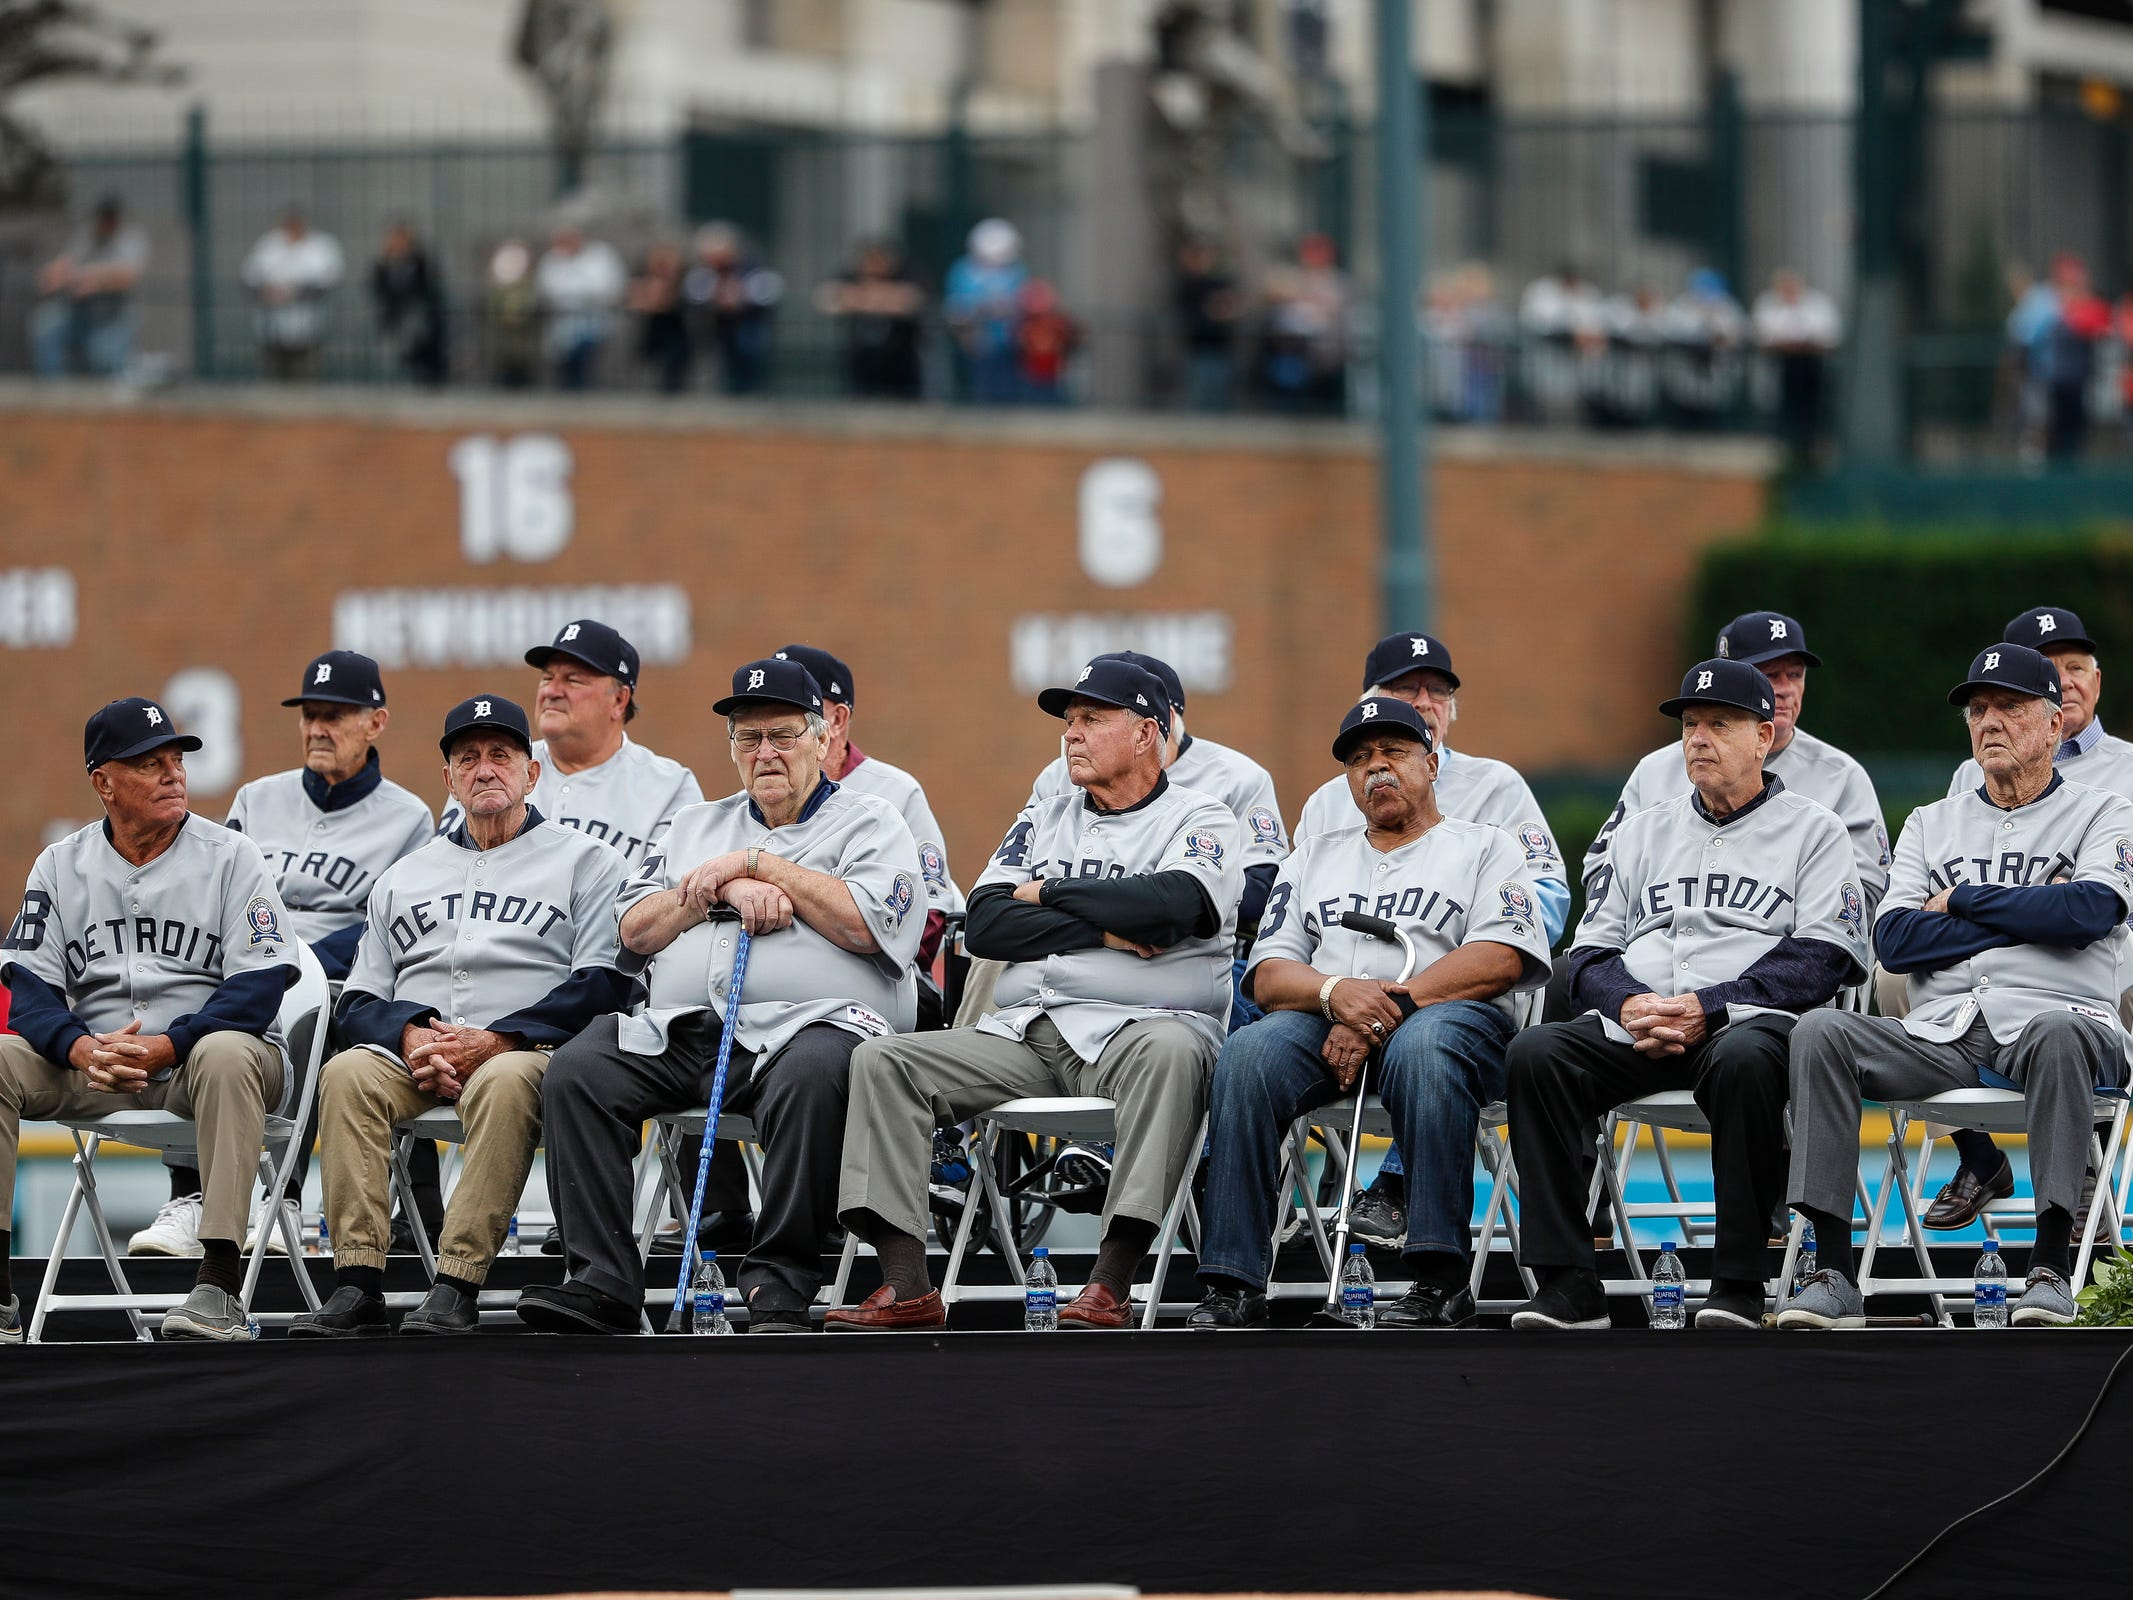 1968 Detroit Tigers World Series championship team is honored during the celebration of the 50th anniversary of the 1968 World Series championship at Comerica Park in Detroit, Saturday, Sept. 8, 2018.